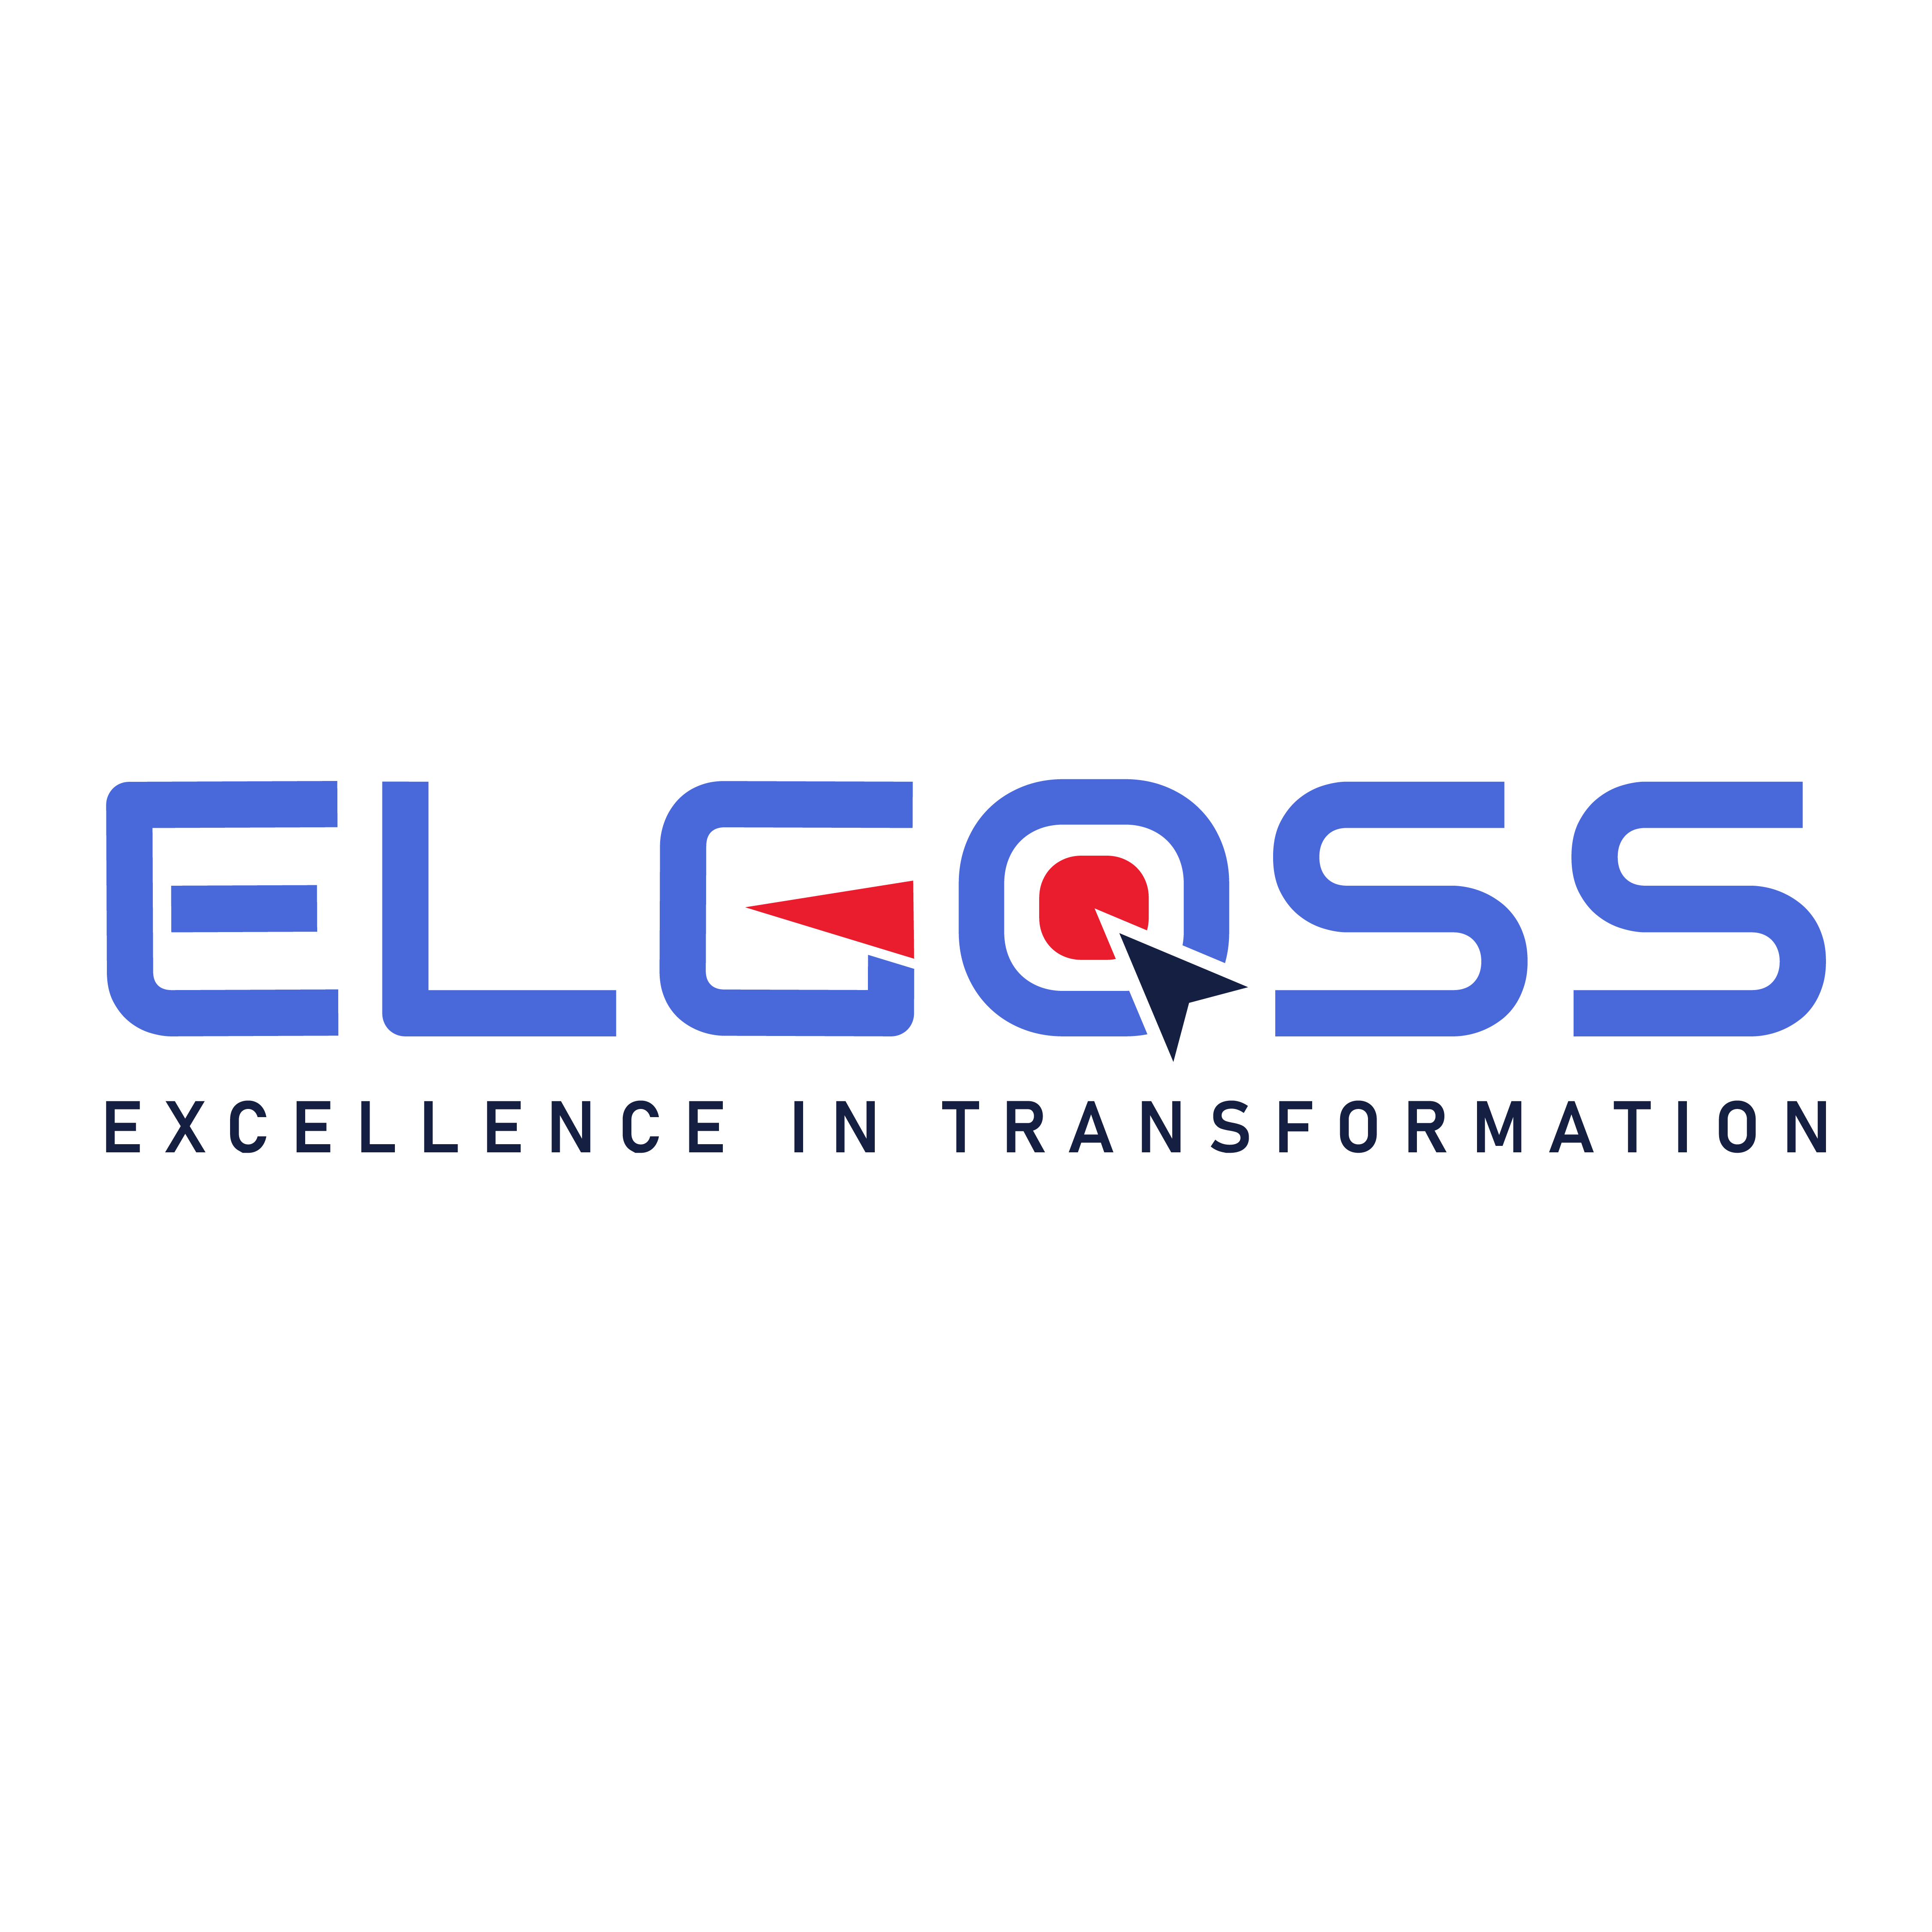 ELGOSS PRIVATE LIMITED